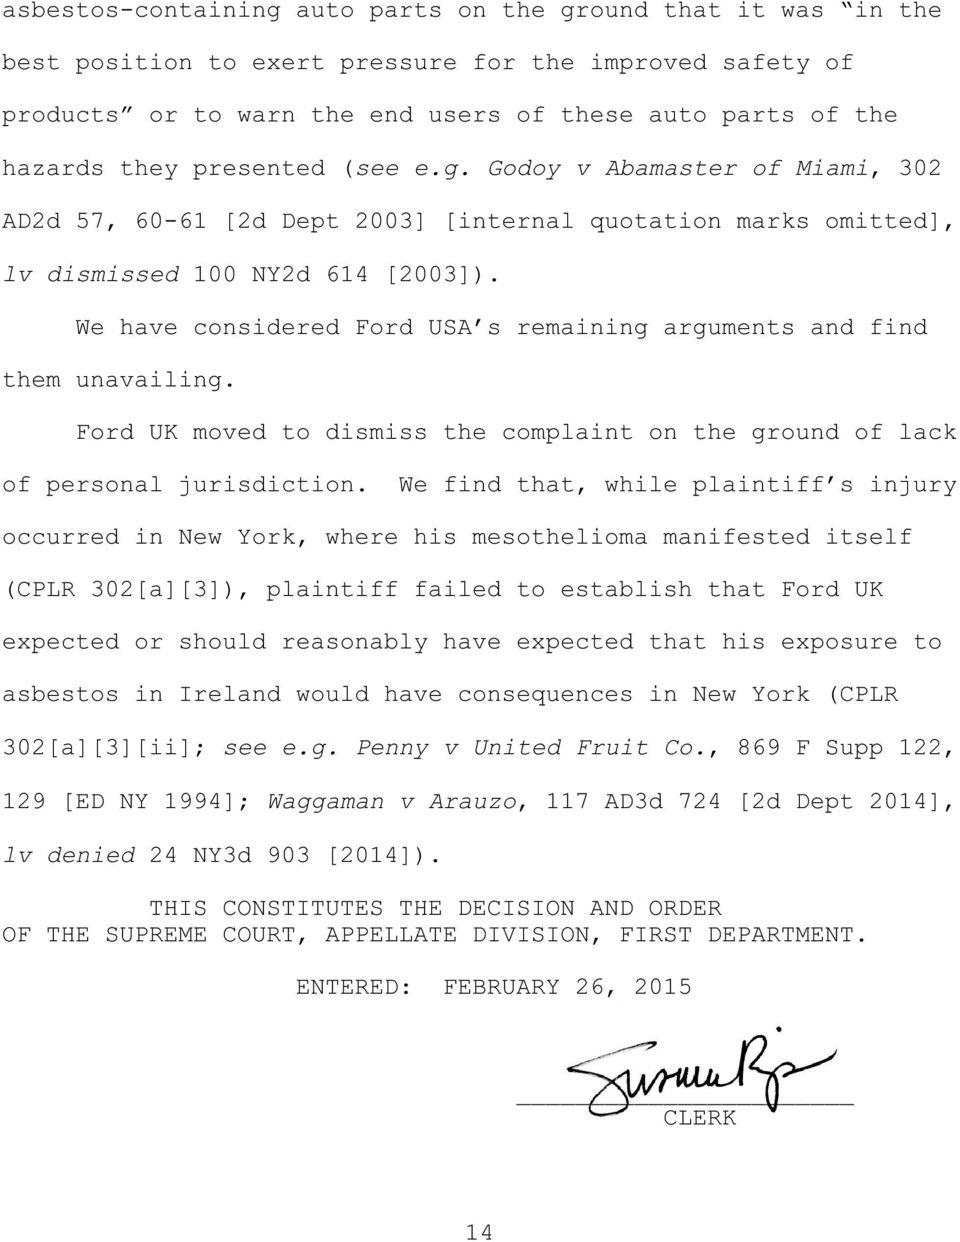 We have considered Ford USA s remaining arguments and find them unavailing. Ford UK moved to dismiss the complaint on the ground of lack of personal jurisdiction.